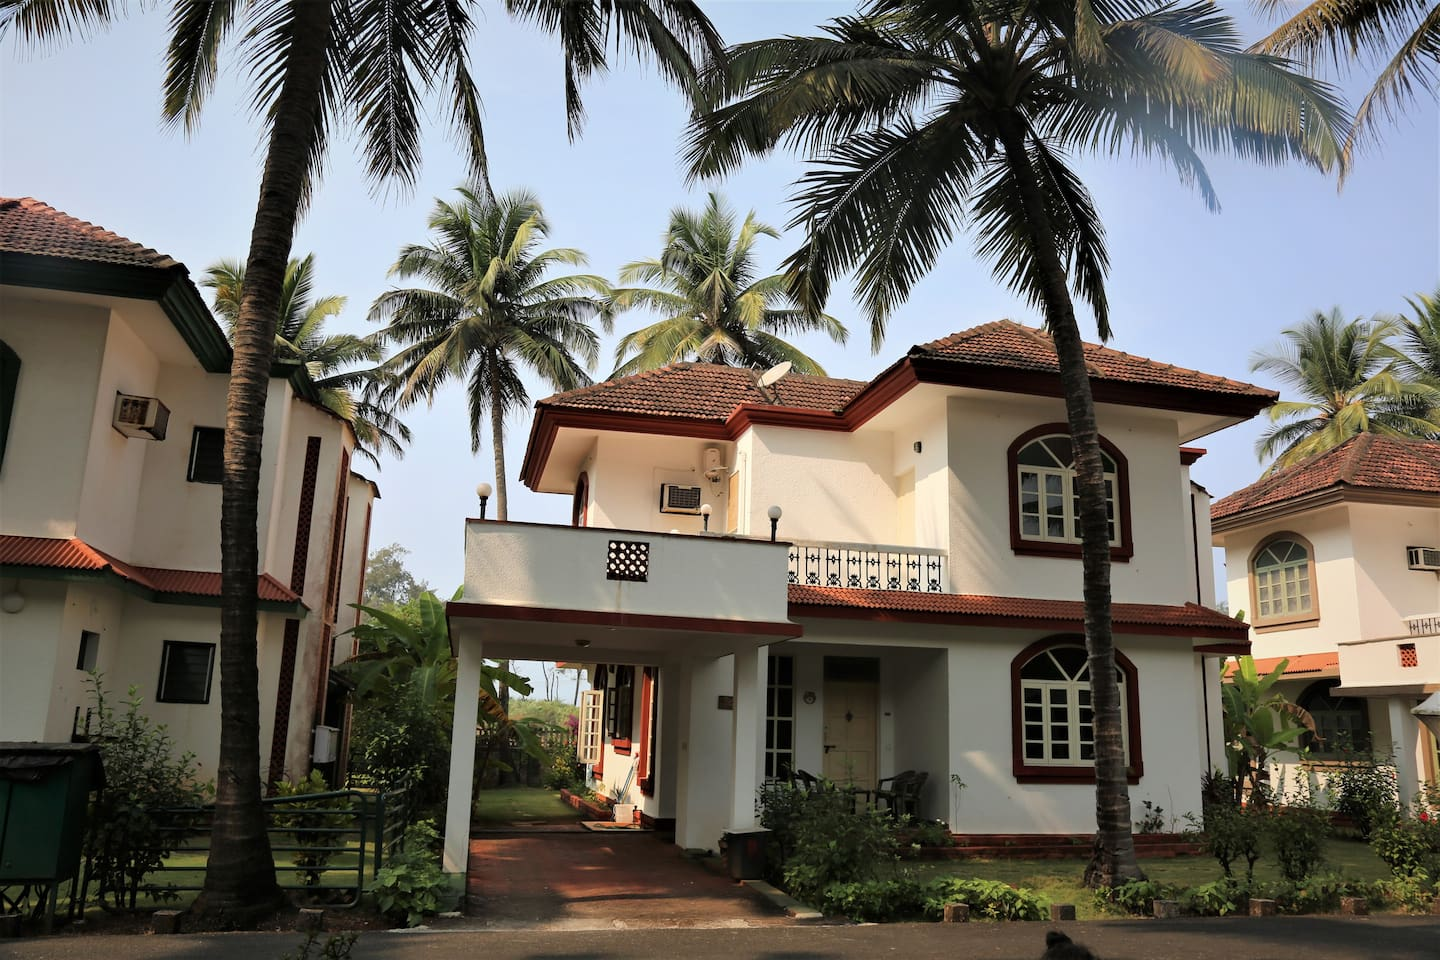 Bungalow ! Most scenic and beautiful house in Goa with tranquility.